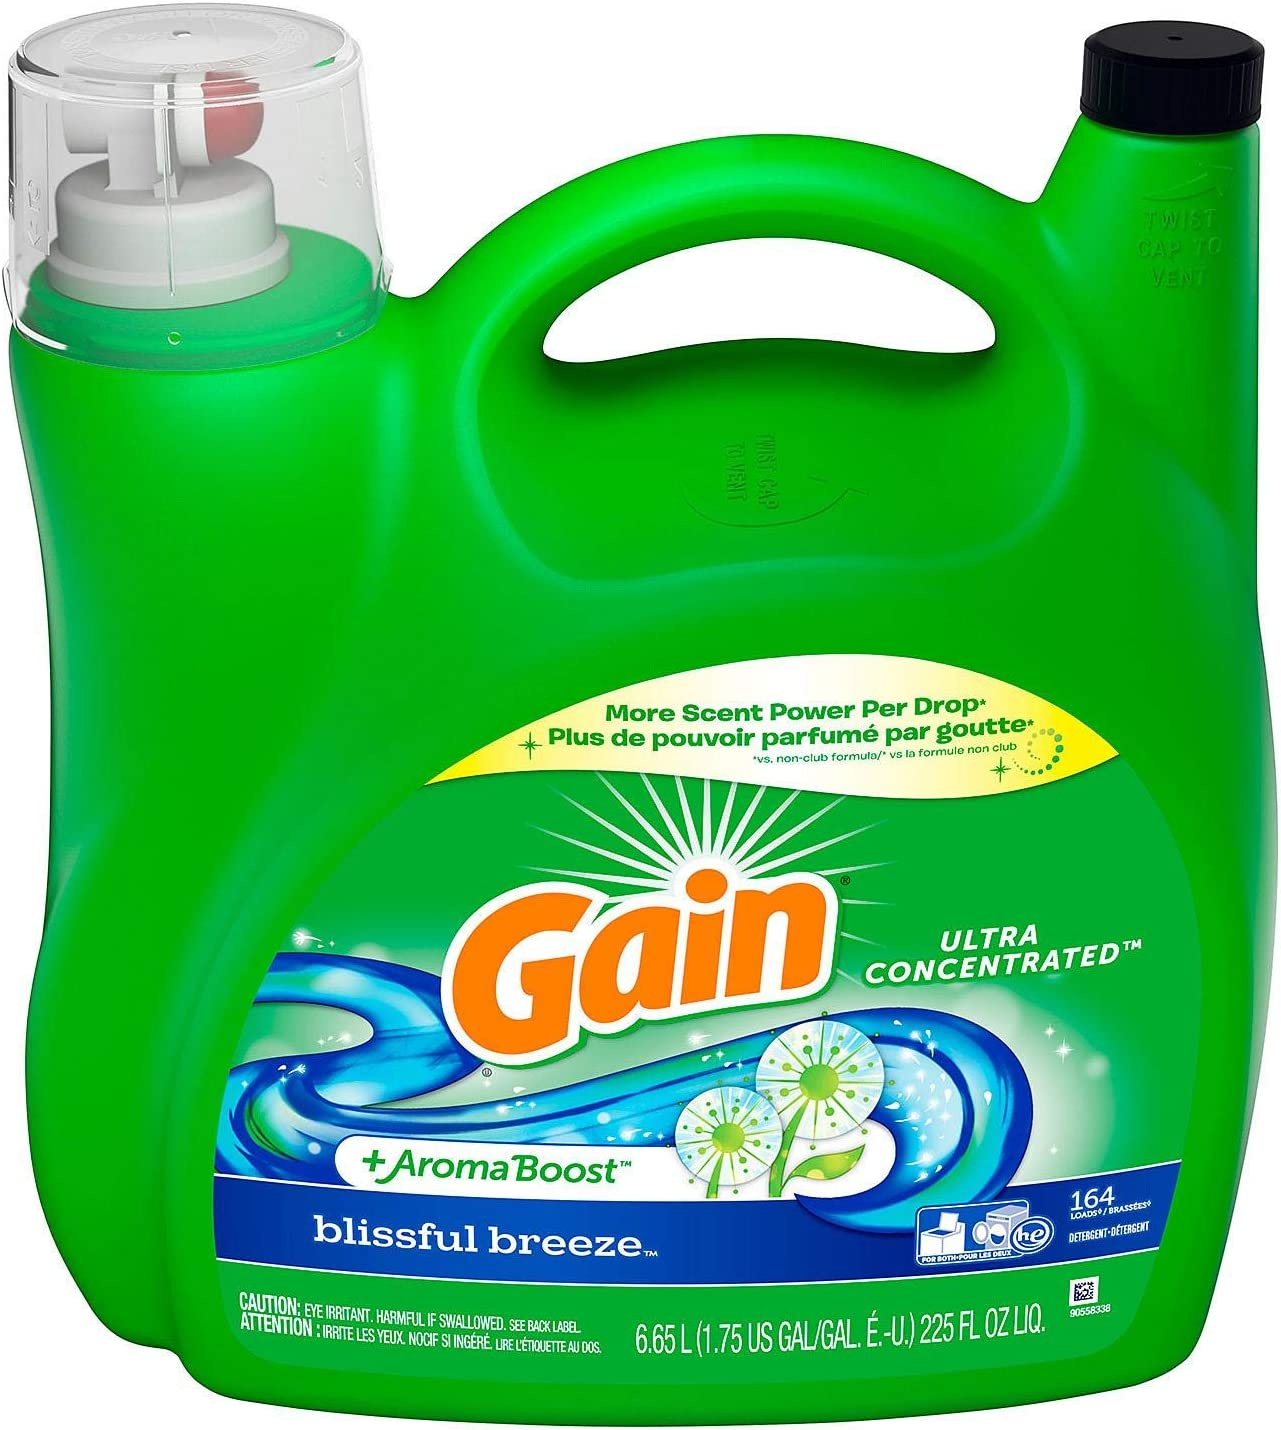 Gain +AromaBoost Ultra Concentrated Liquid Laundry Detergent, Blissful Breeze, 164 Loads (225 fl oz.)